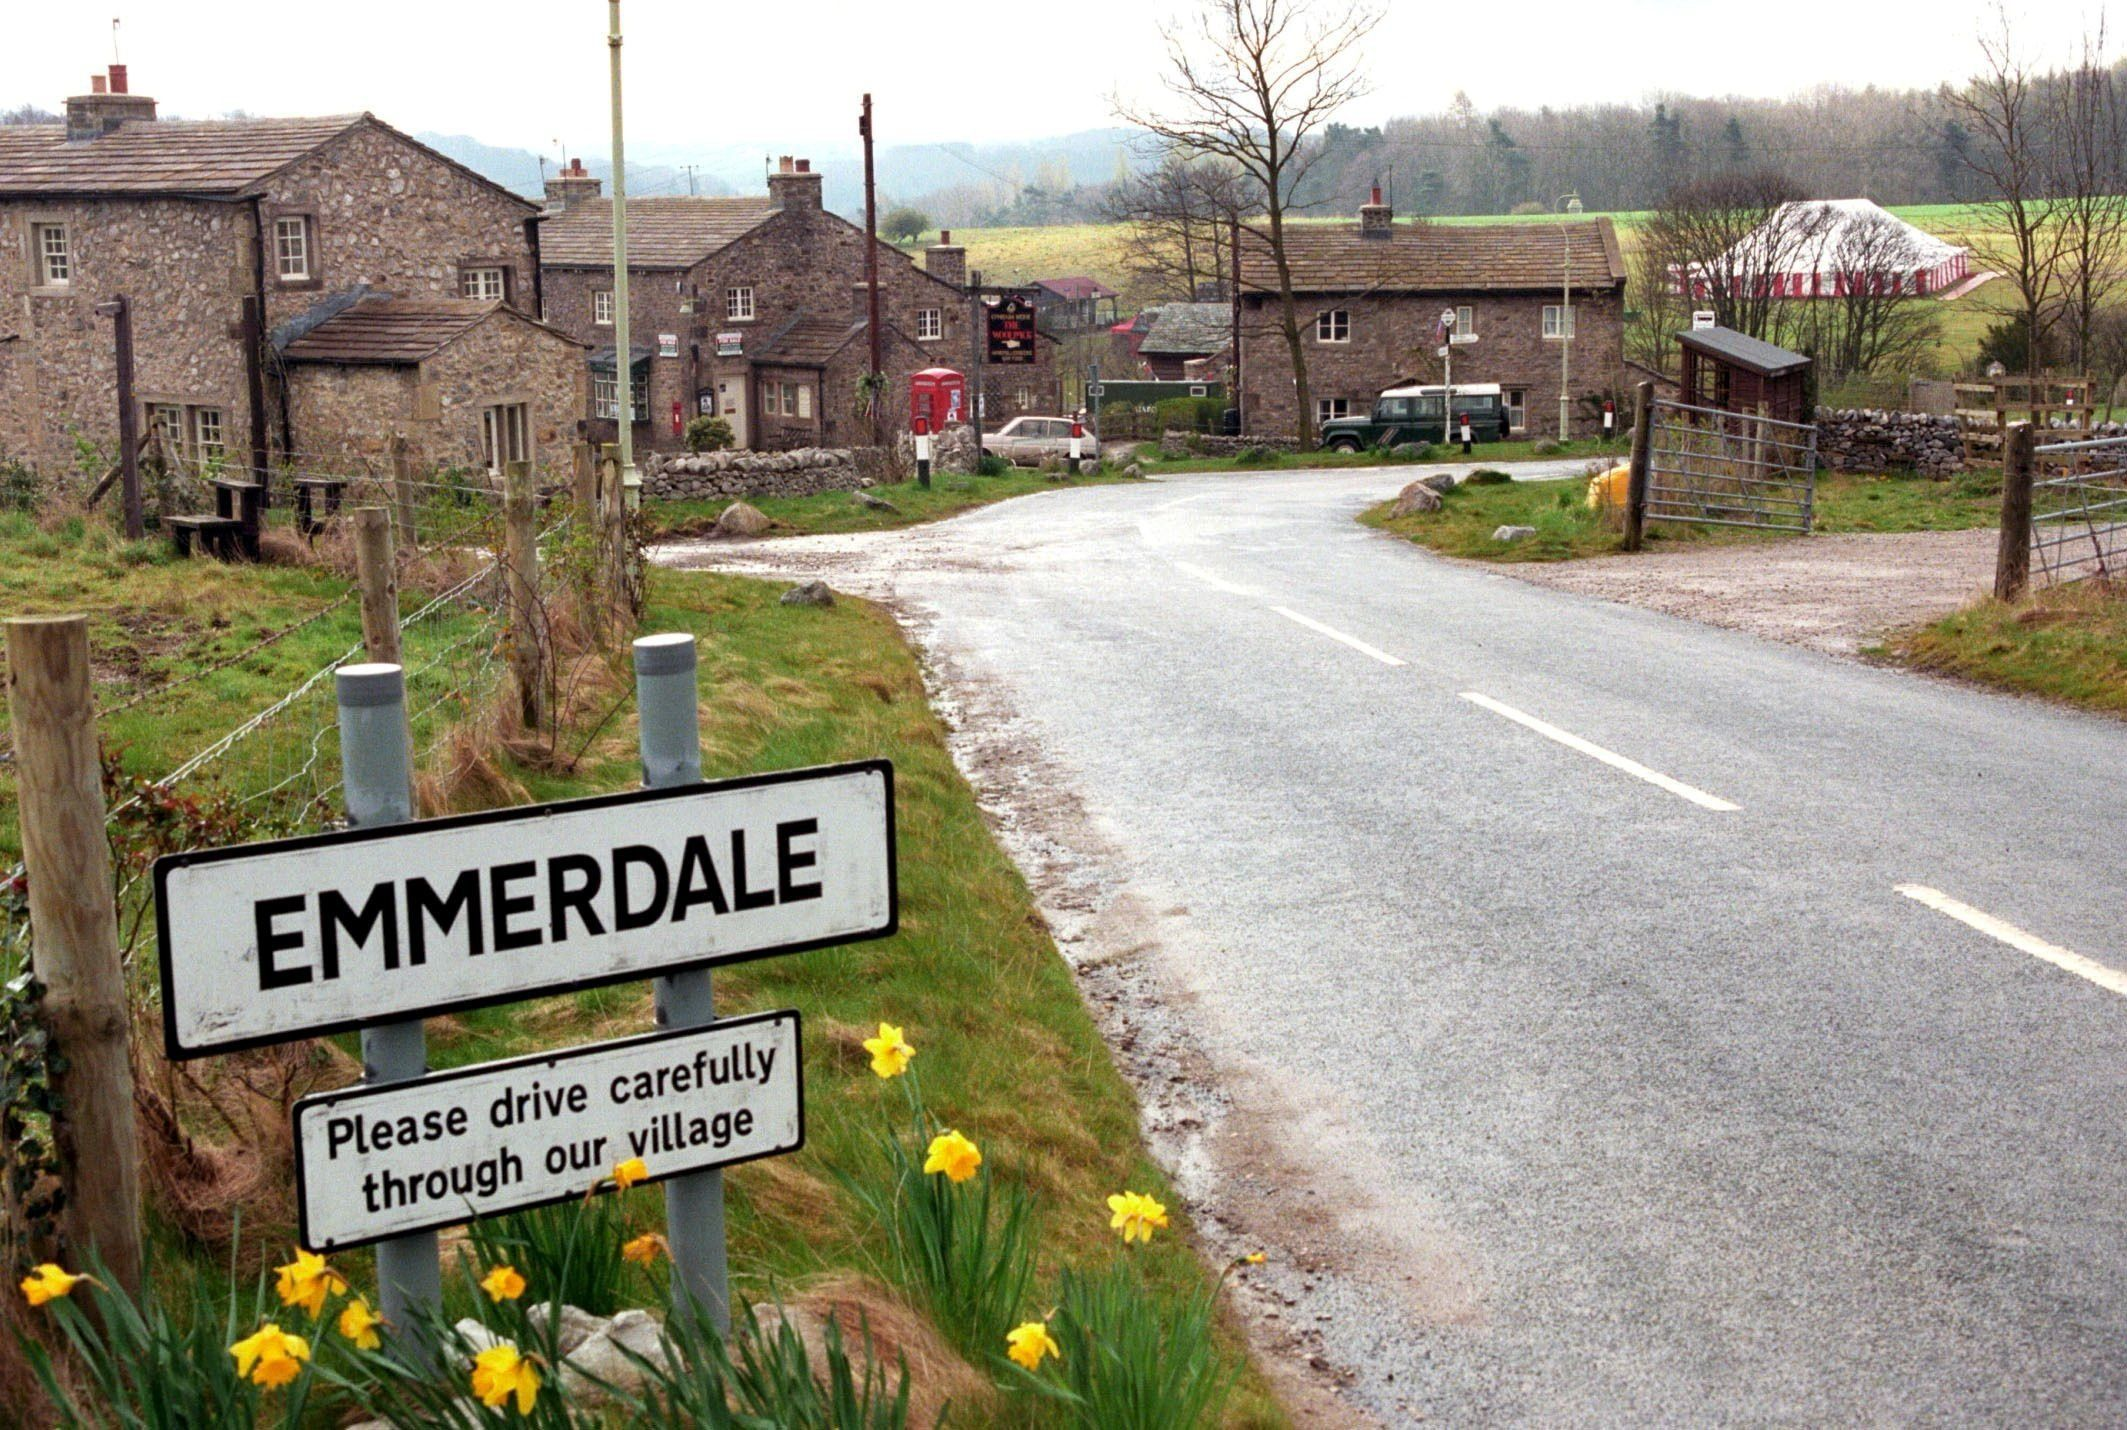 Spoiler! 'Emmerdale' Boss Promises Another Week Of 'Intense And Unmissable' Action In